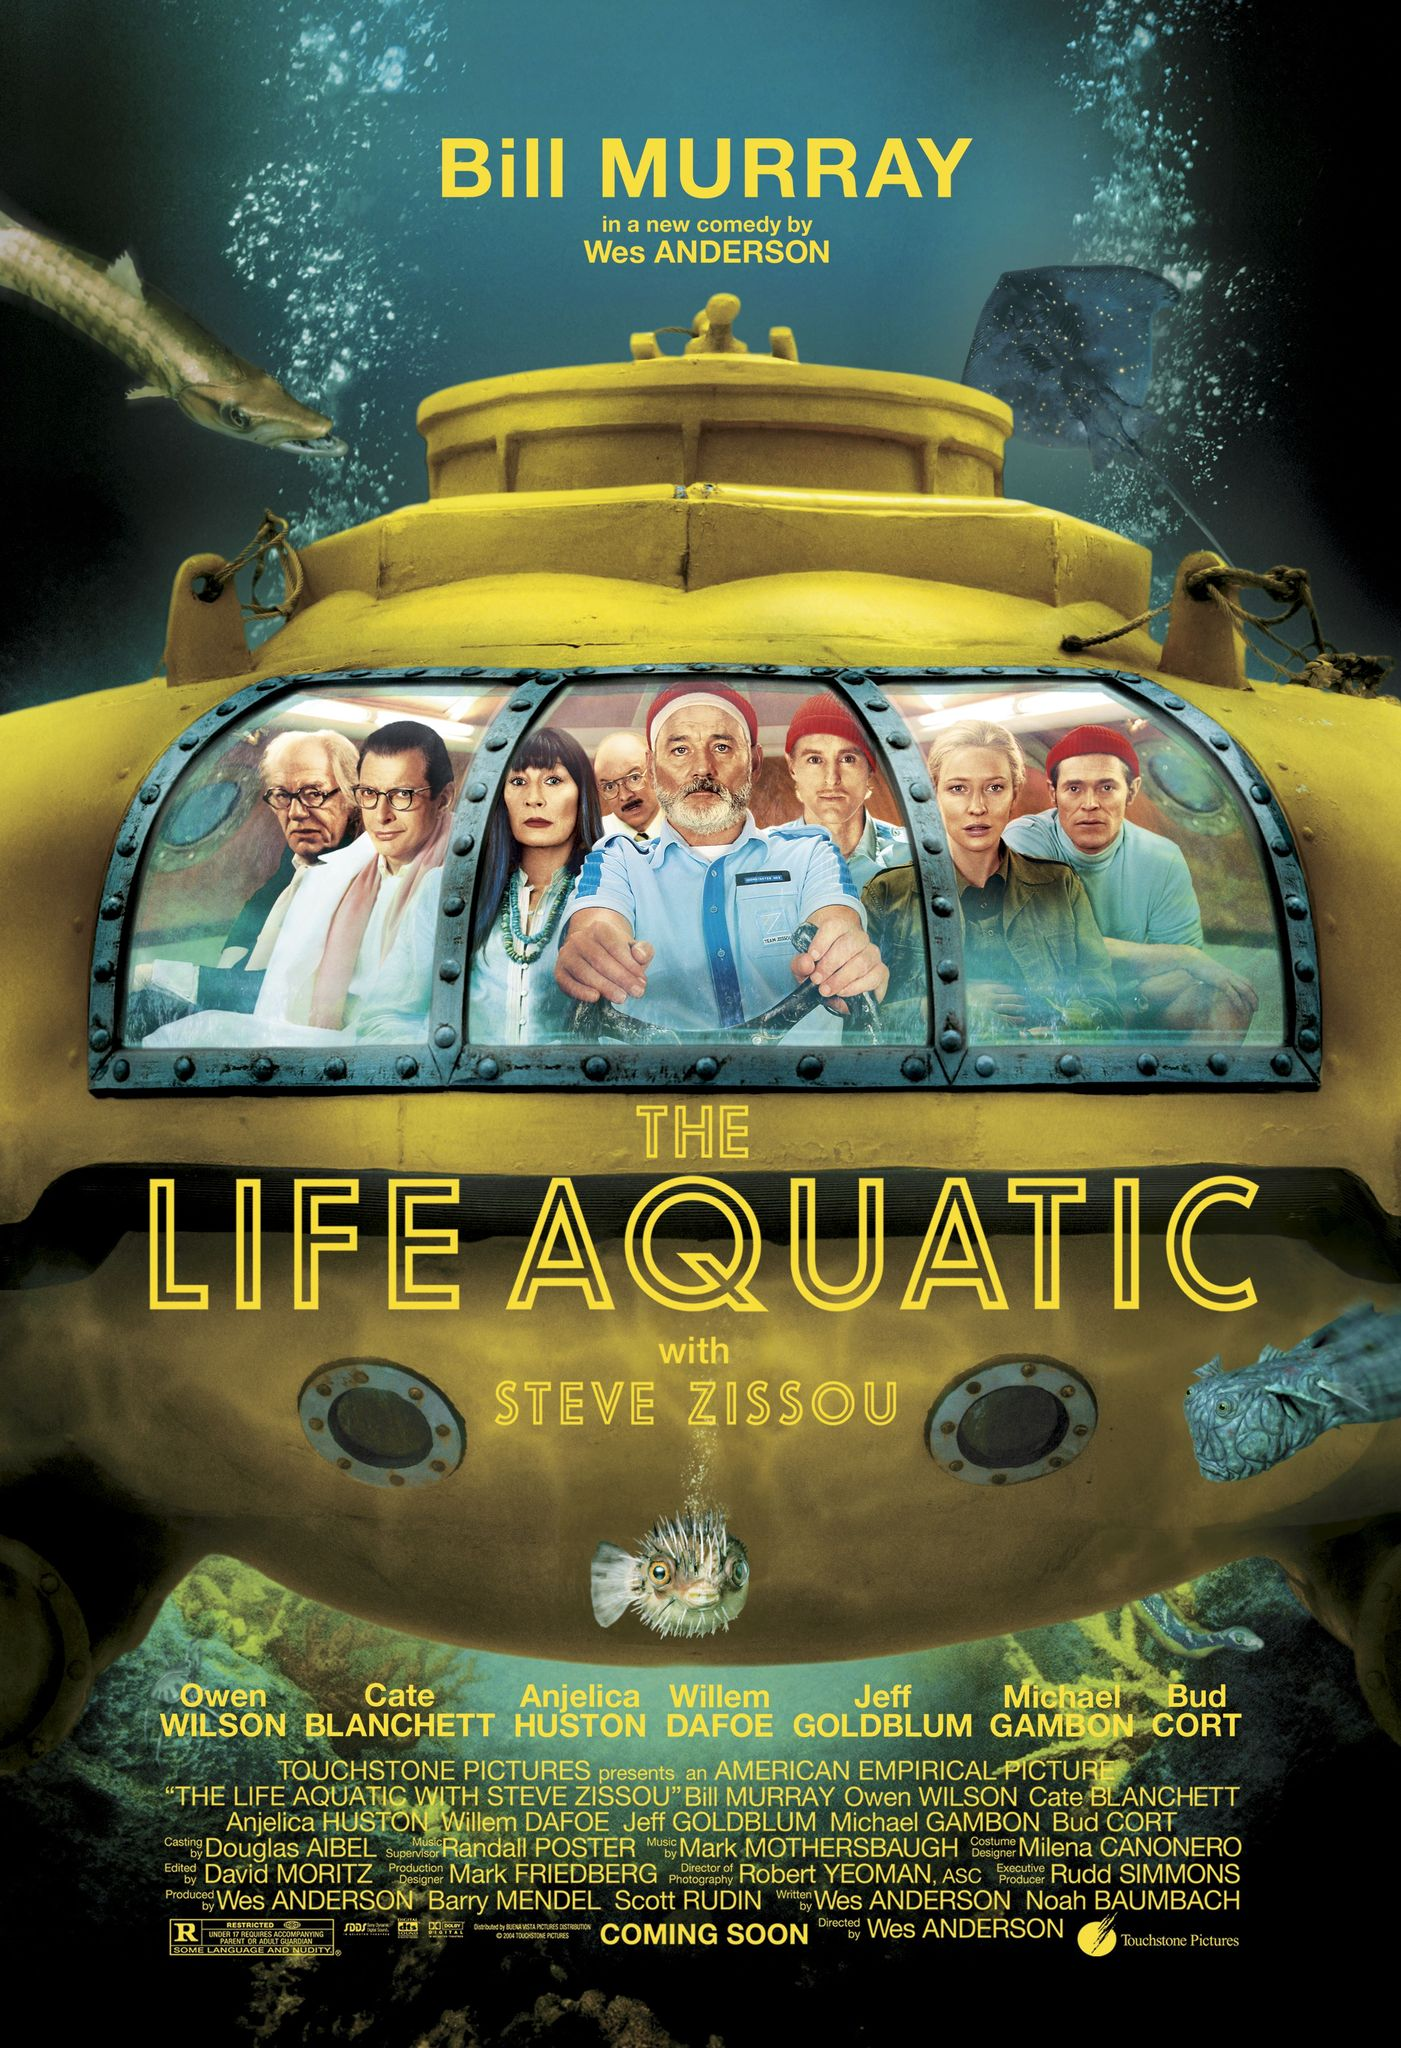 Life Aquatic with Steve Zissou movie cover